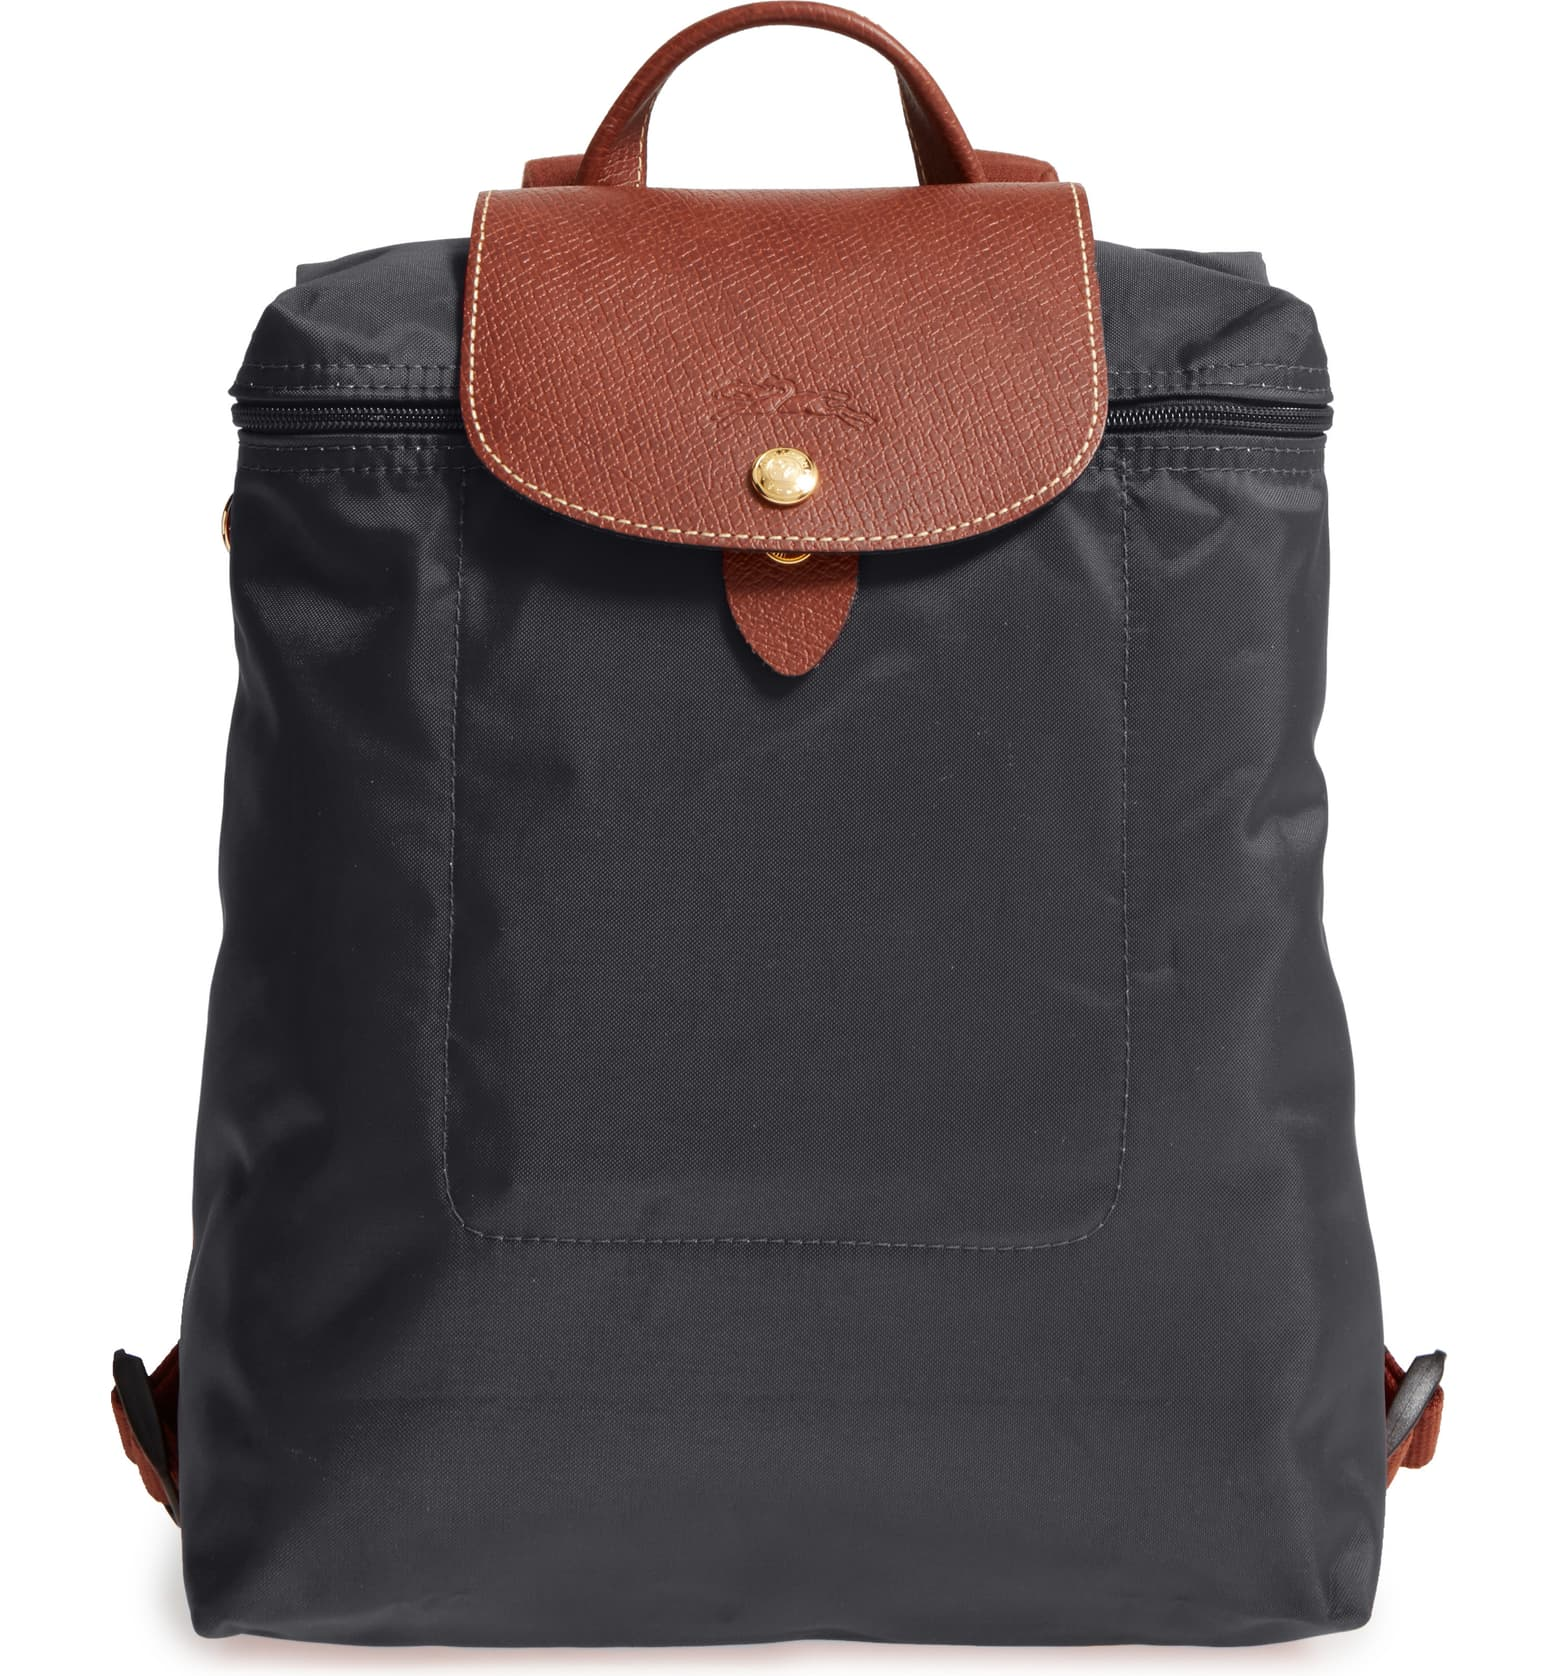 The Longchamp Le Pliage Nylon Backpack